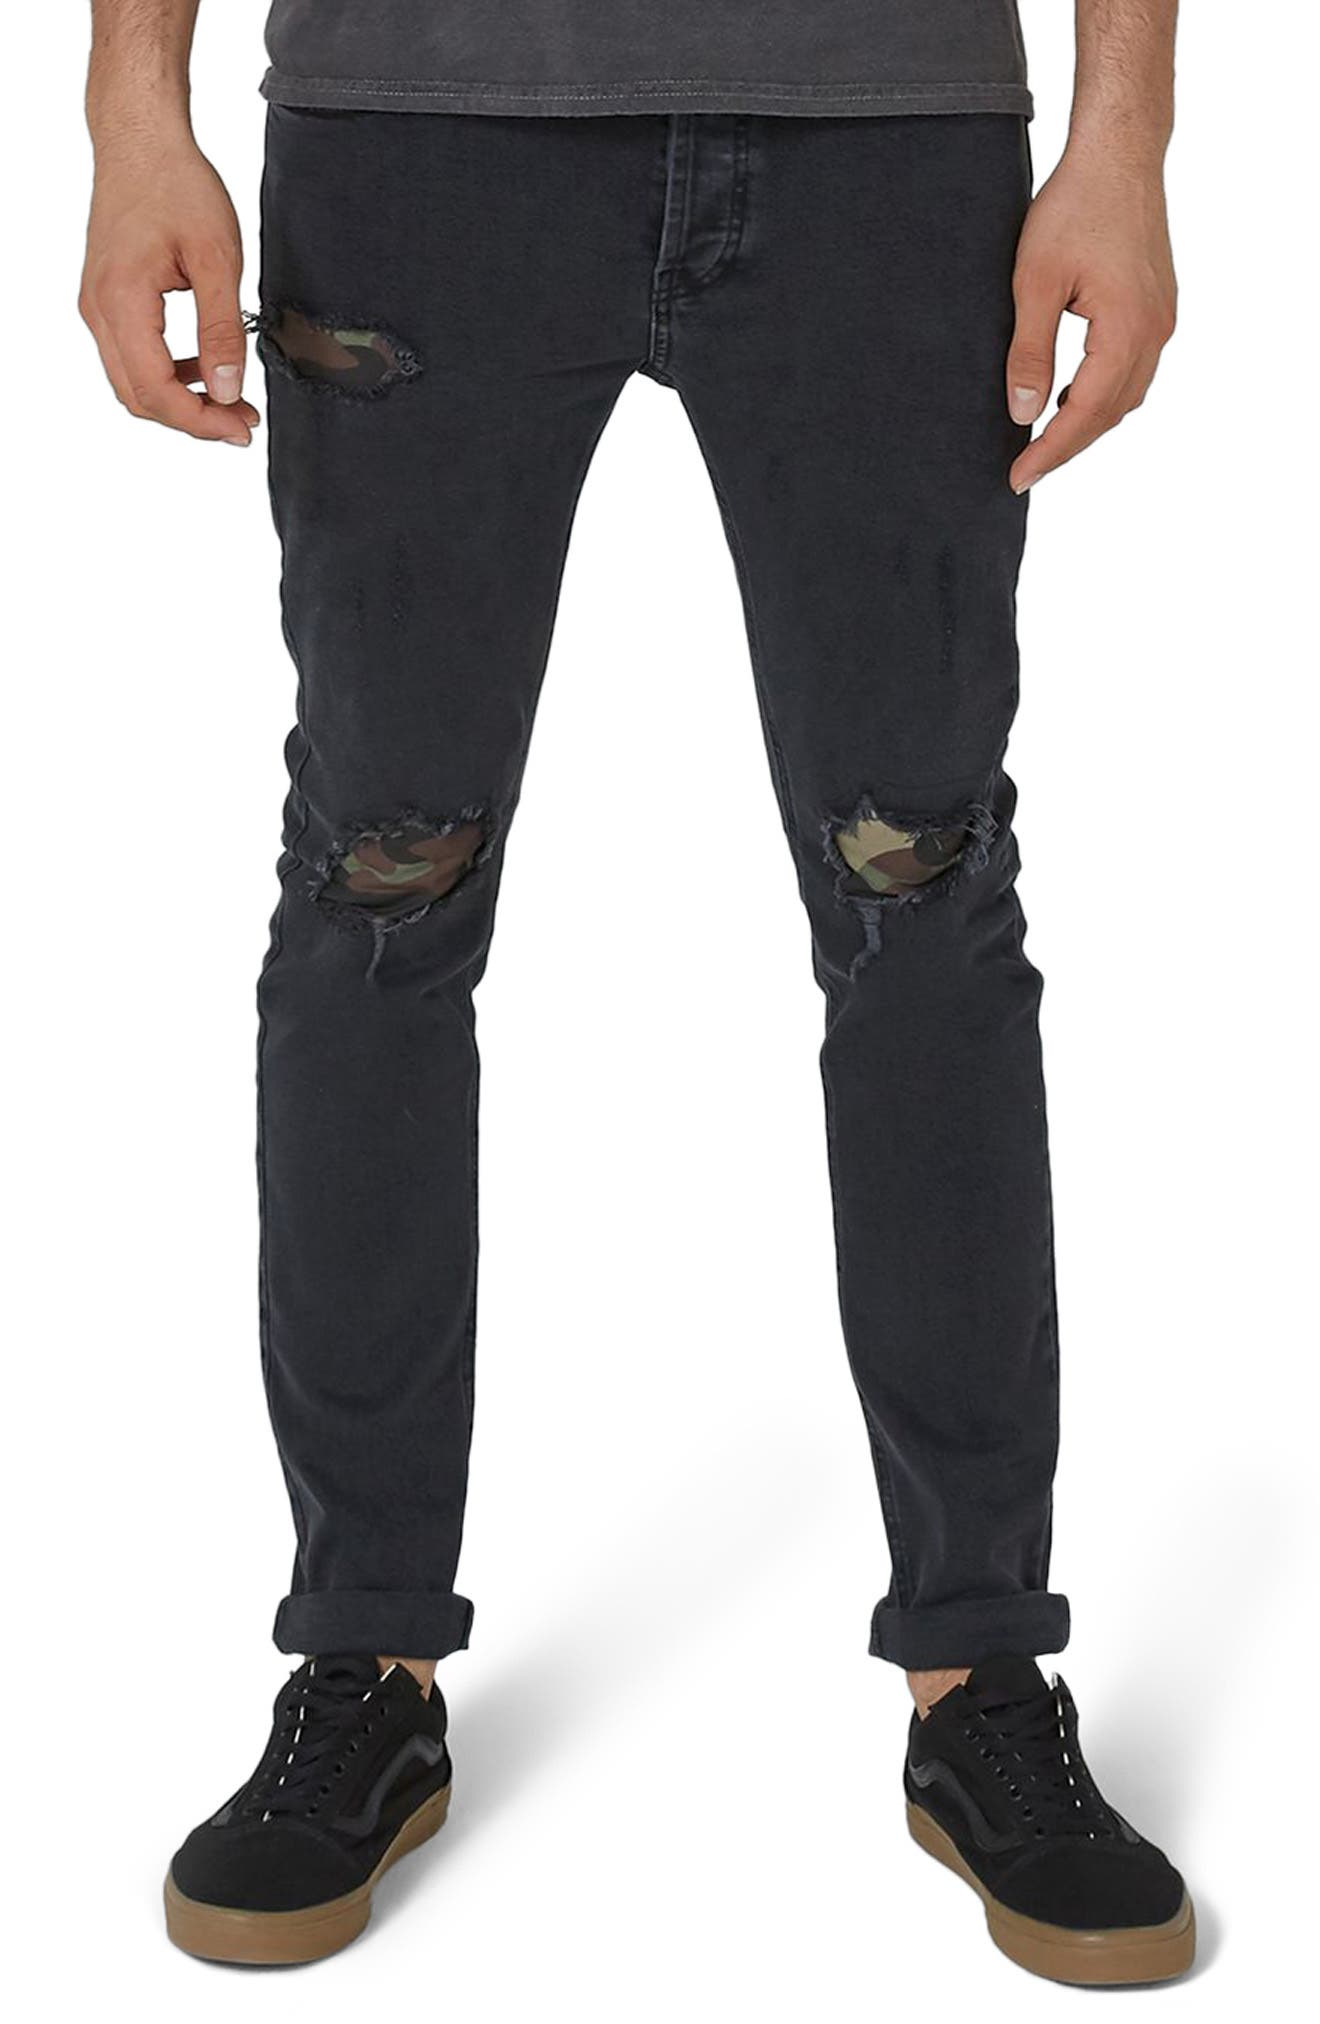 Camo Patch Skinny Jeans,                             Main thumbnail 1, color,                             001